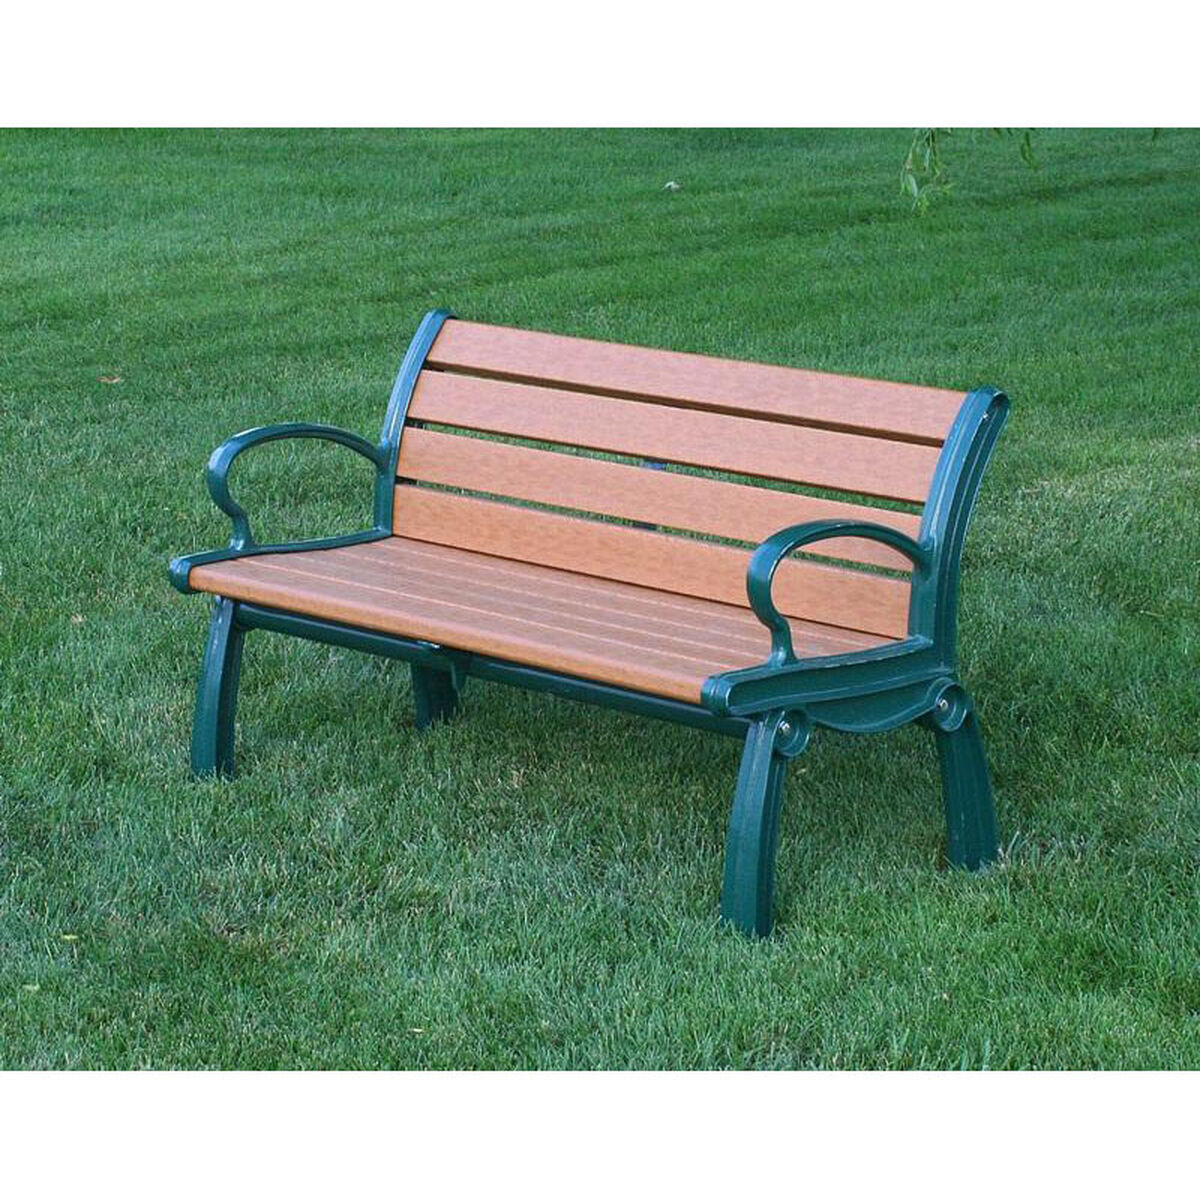 Our heritage 5 recycled plastic bench with aluminum frame is on sale now